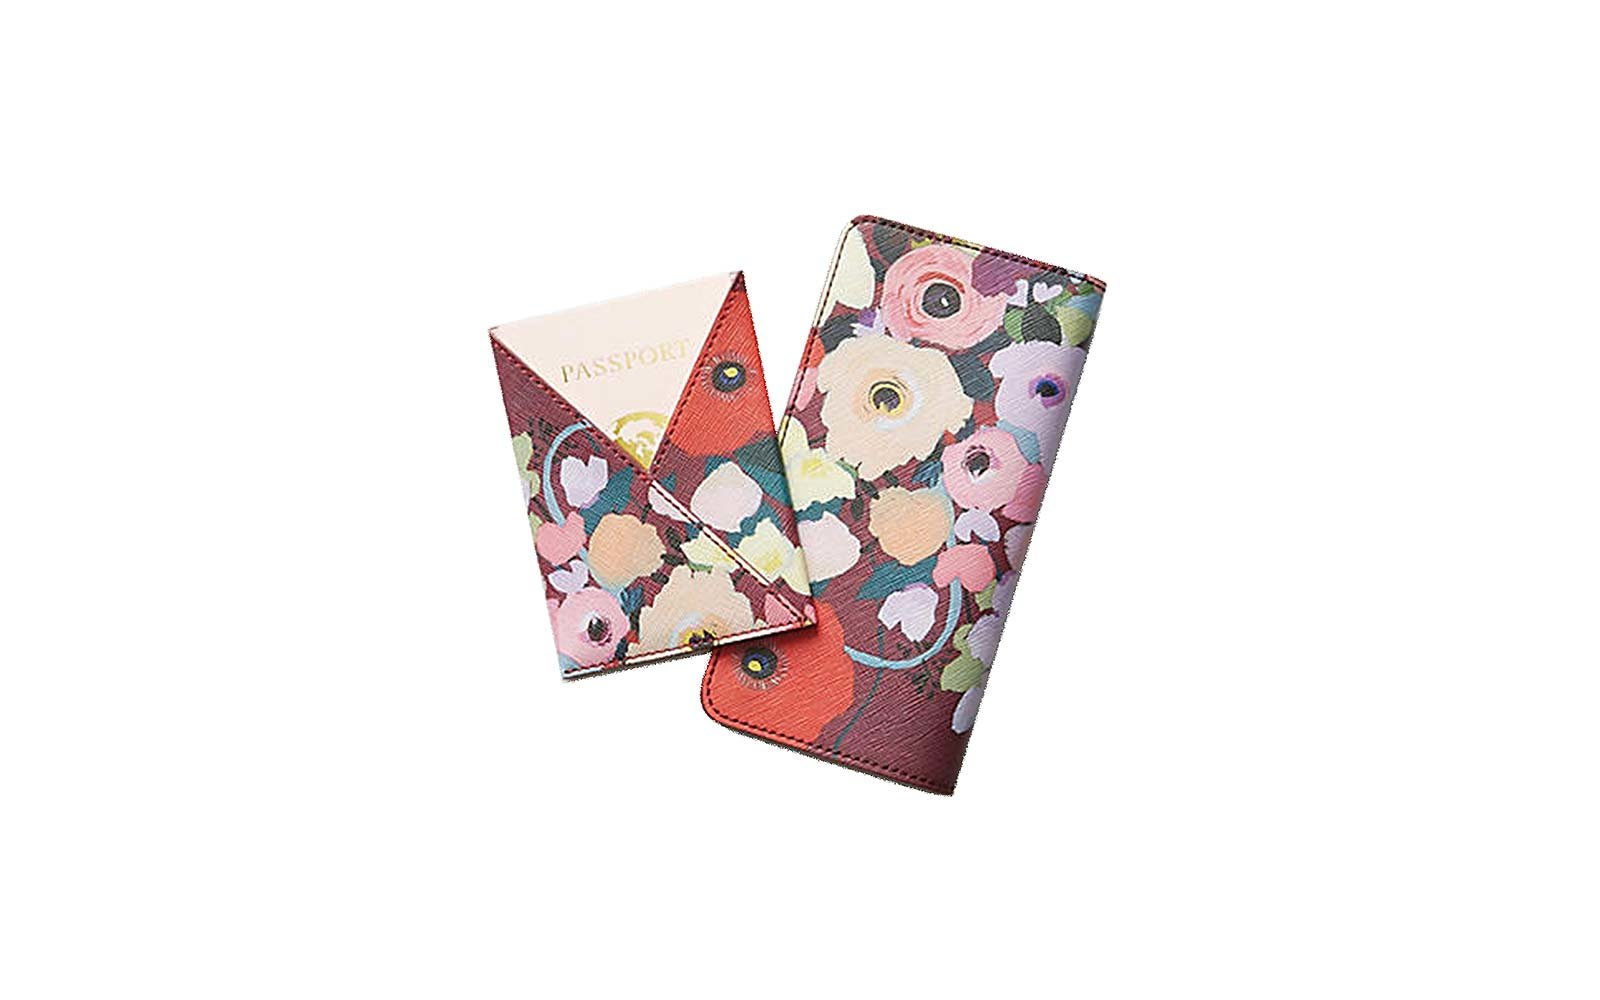 KT Smail Picturesque Florals Travel Accessories Gift Guide Under $25